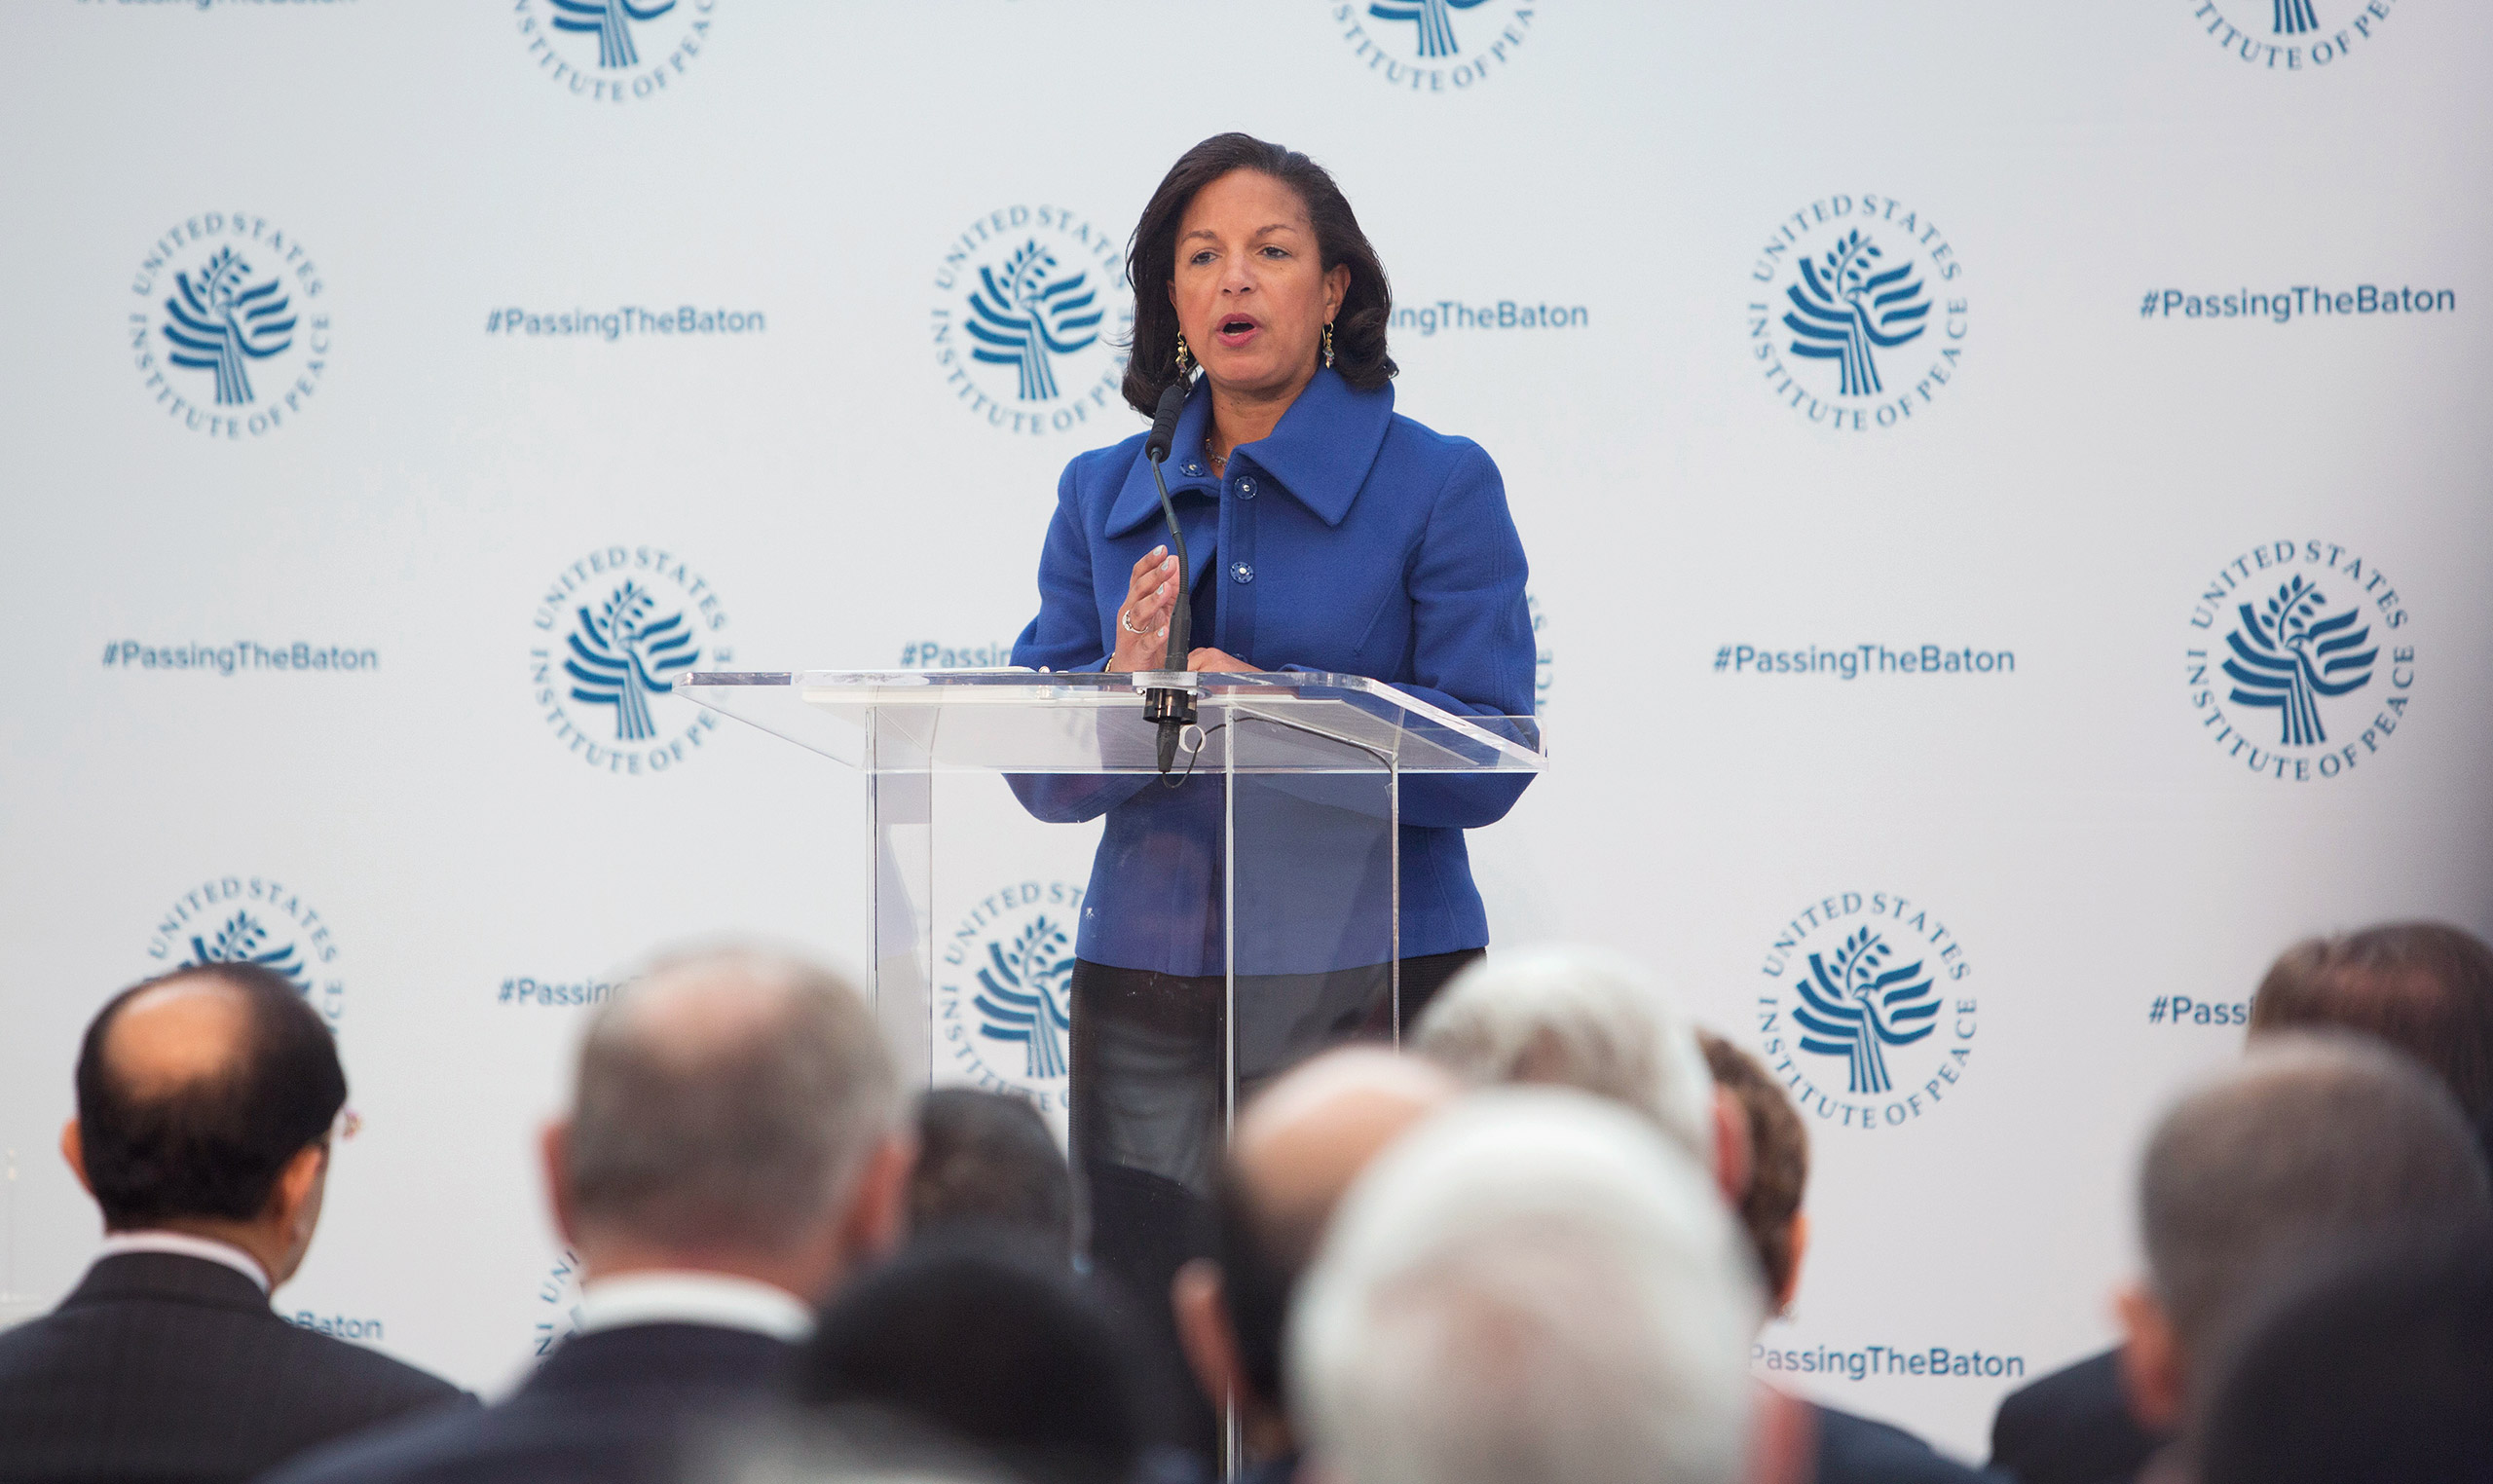 Susan Rice was President Obama's National Security Adviser